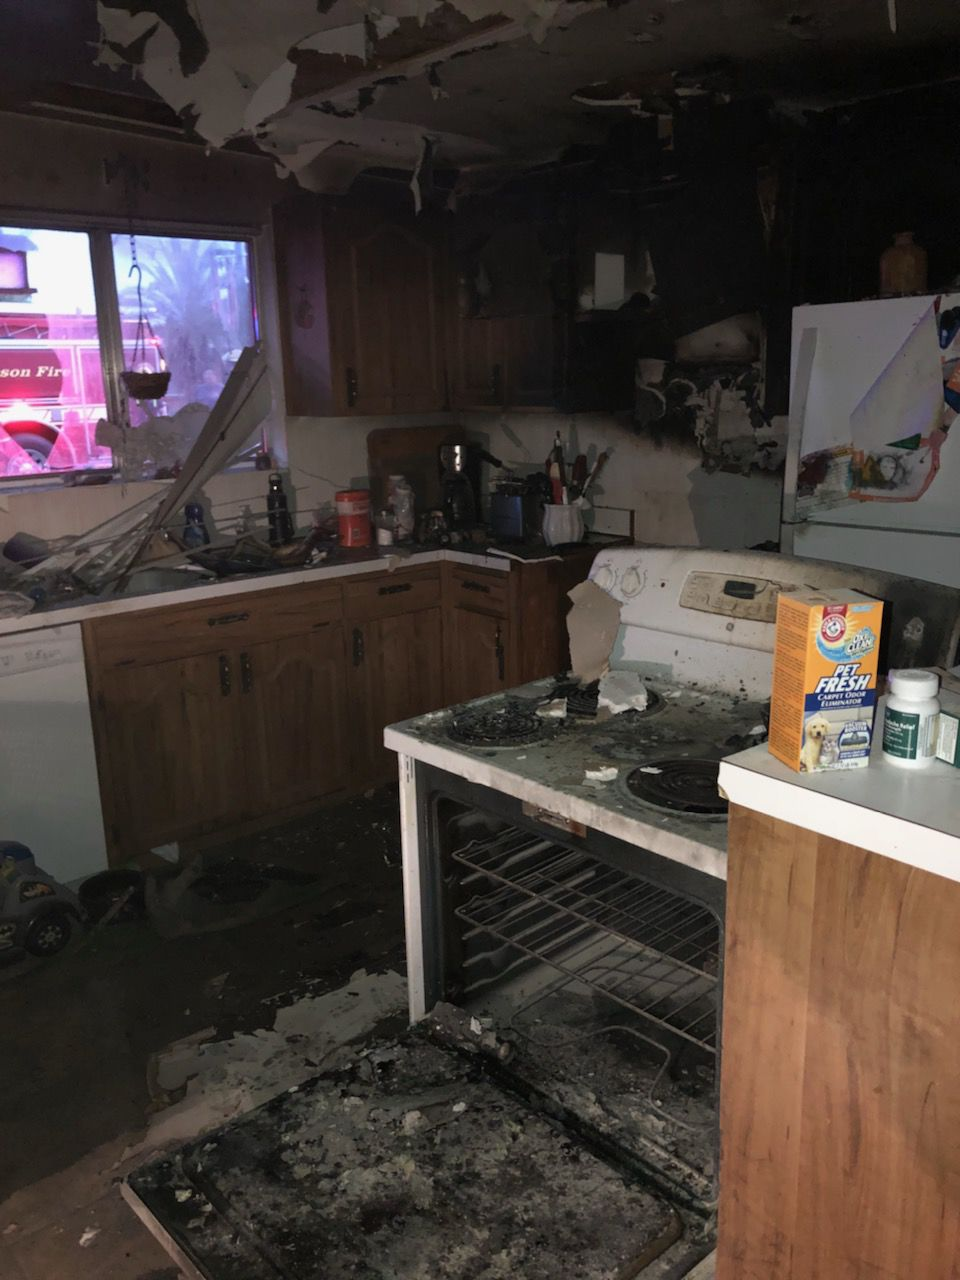 One seriously injured after unattended food causes fire in Tucson home | Tucson.com